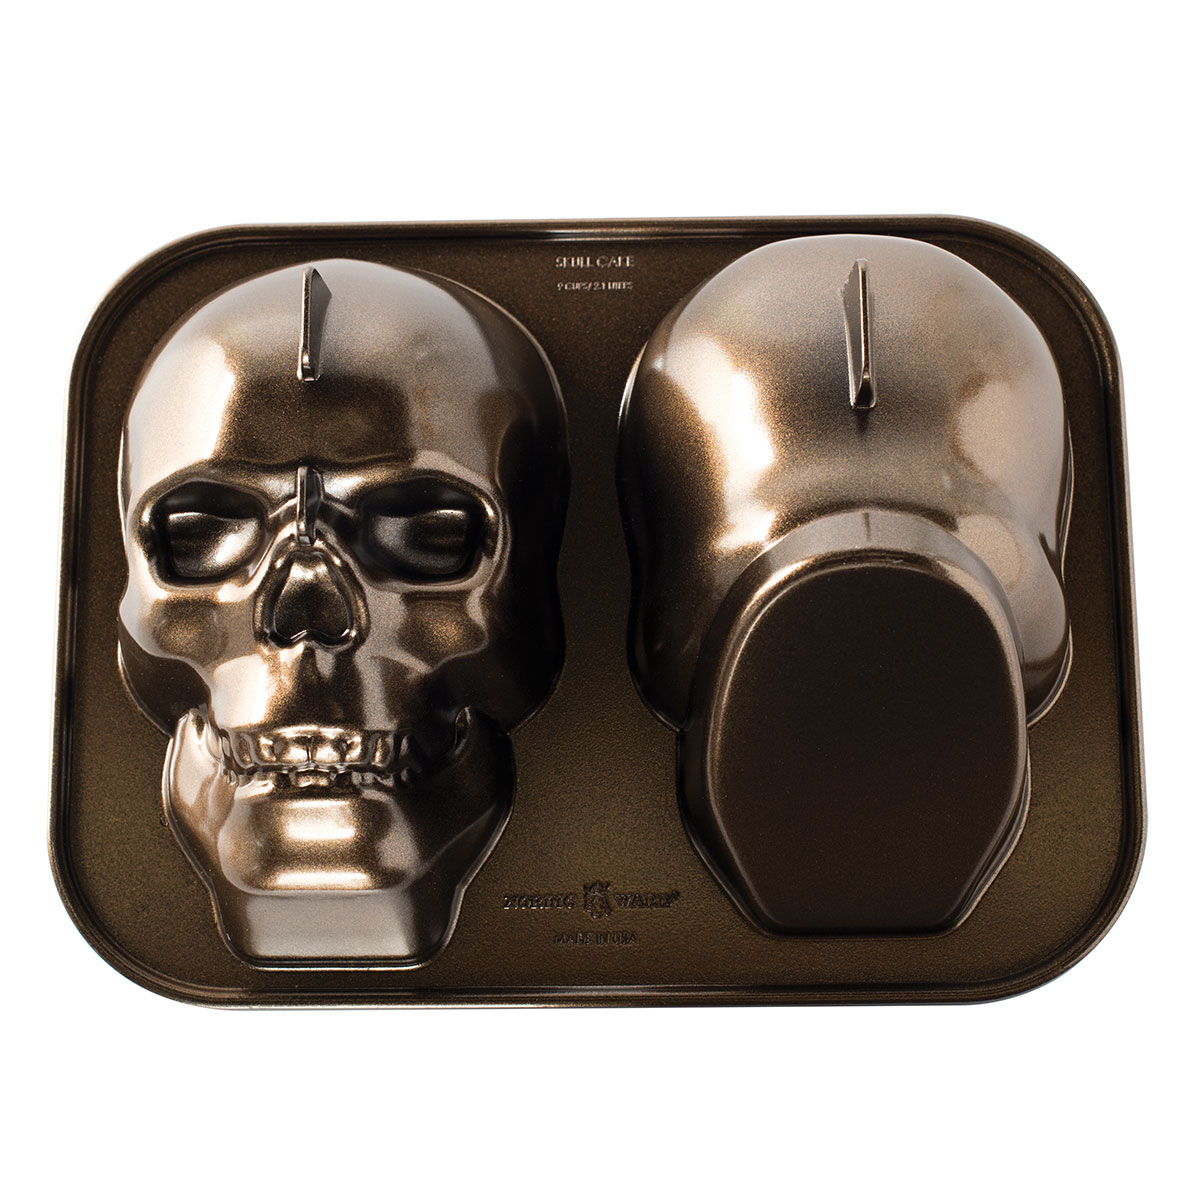 Image of   Nordic Ware bageform - Haunted Skull Cake Pan